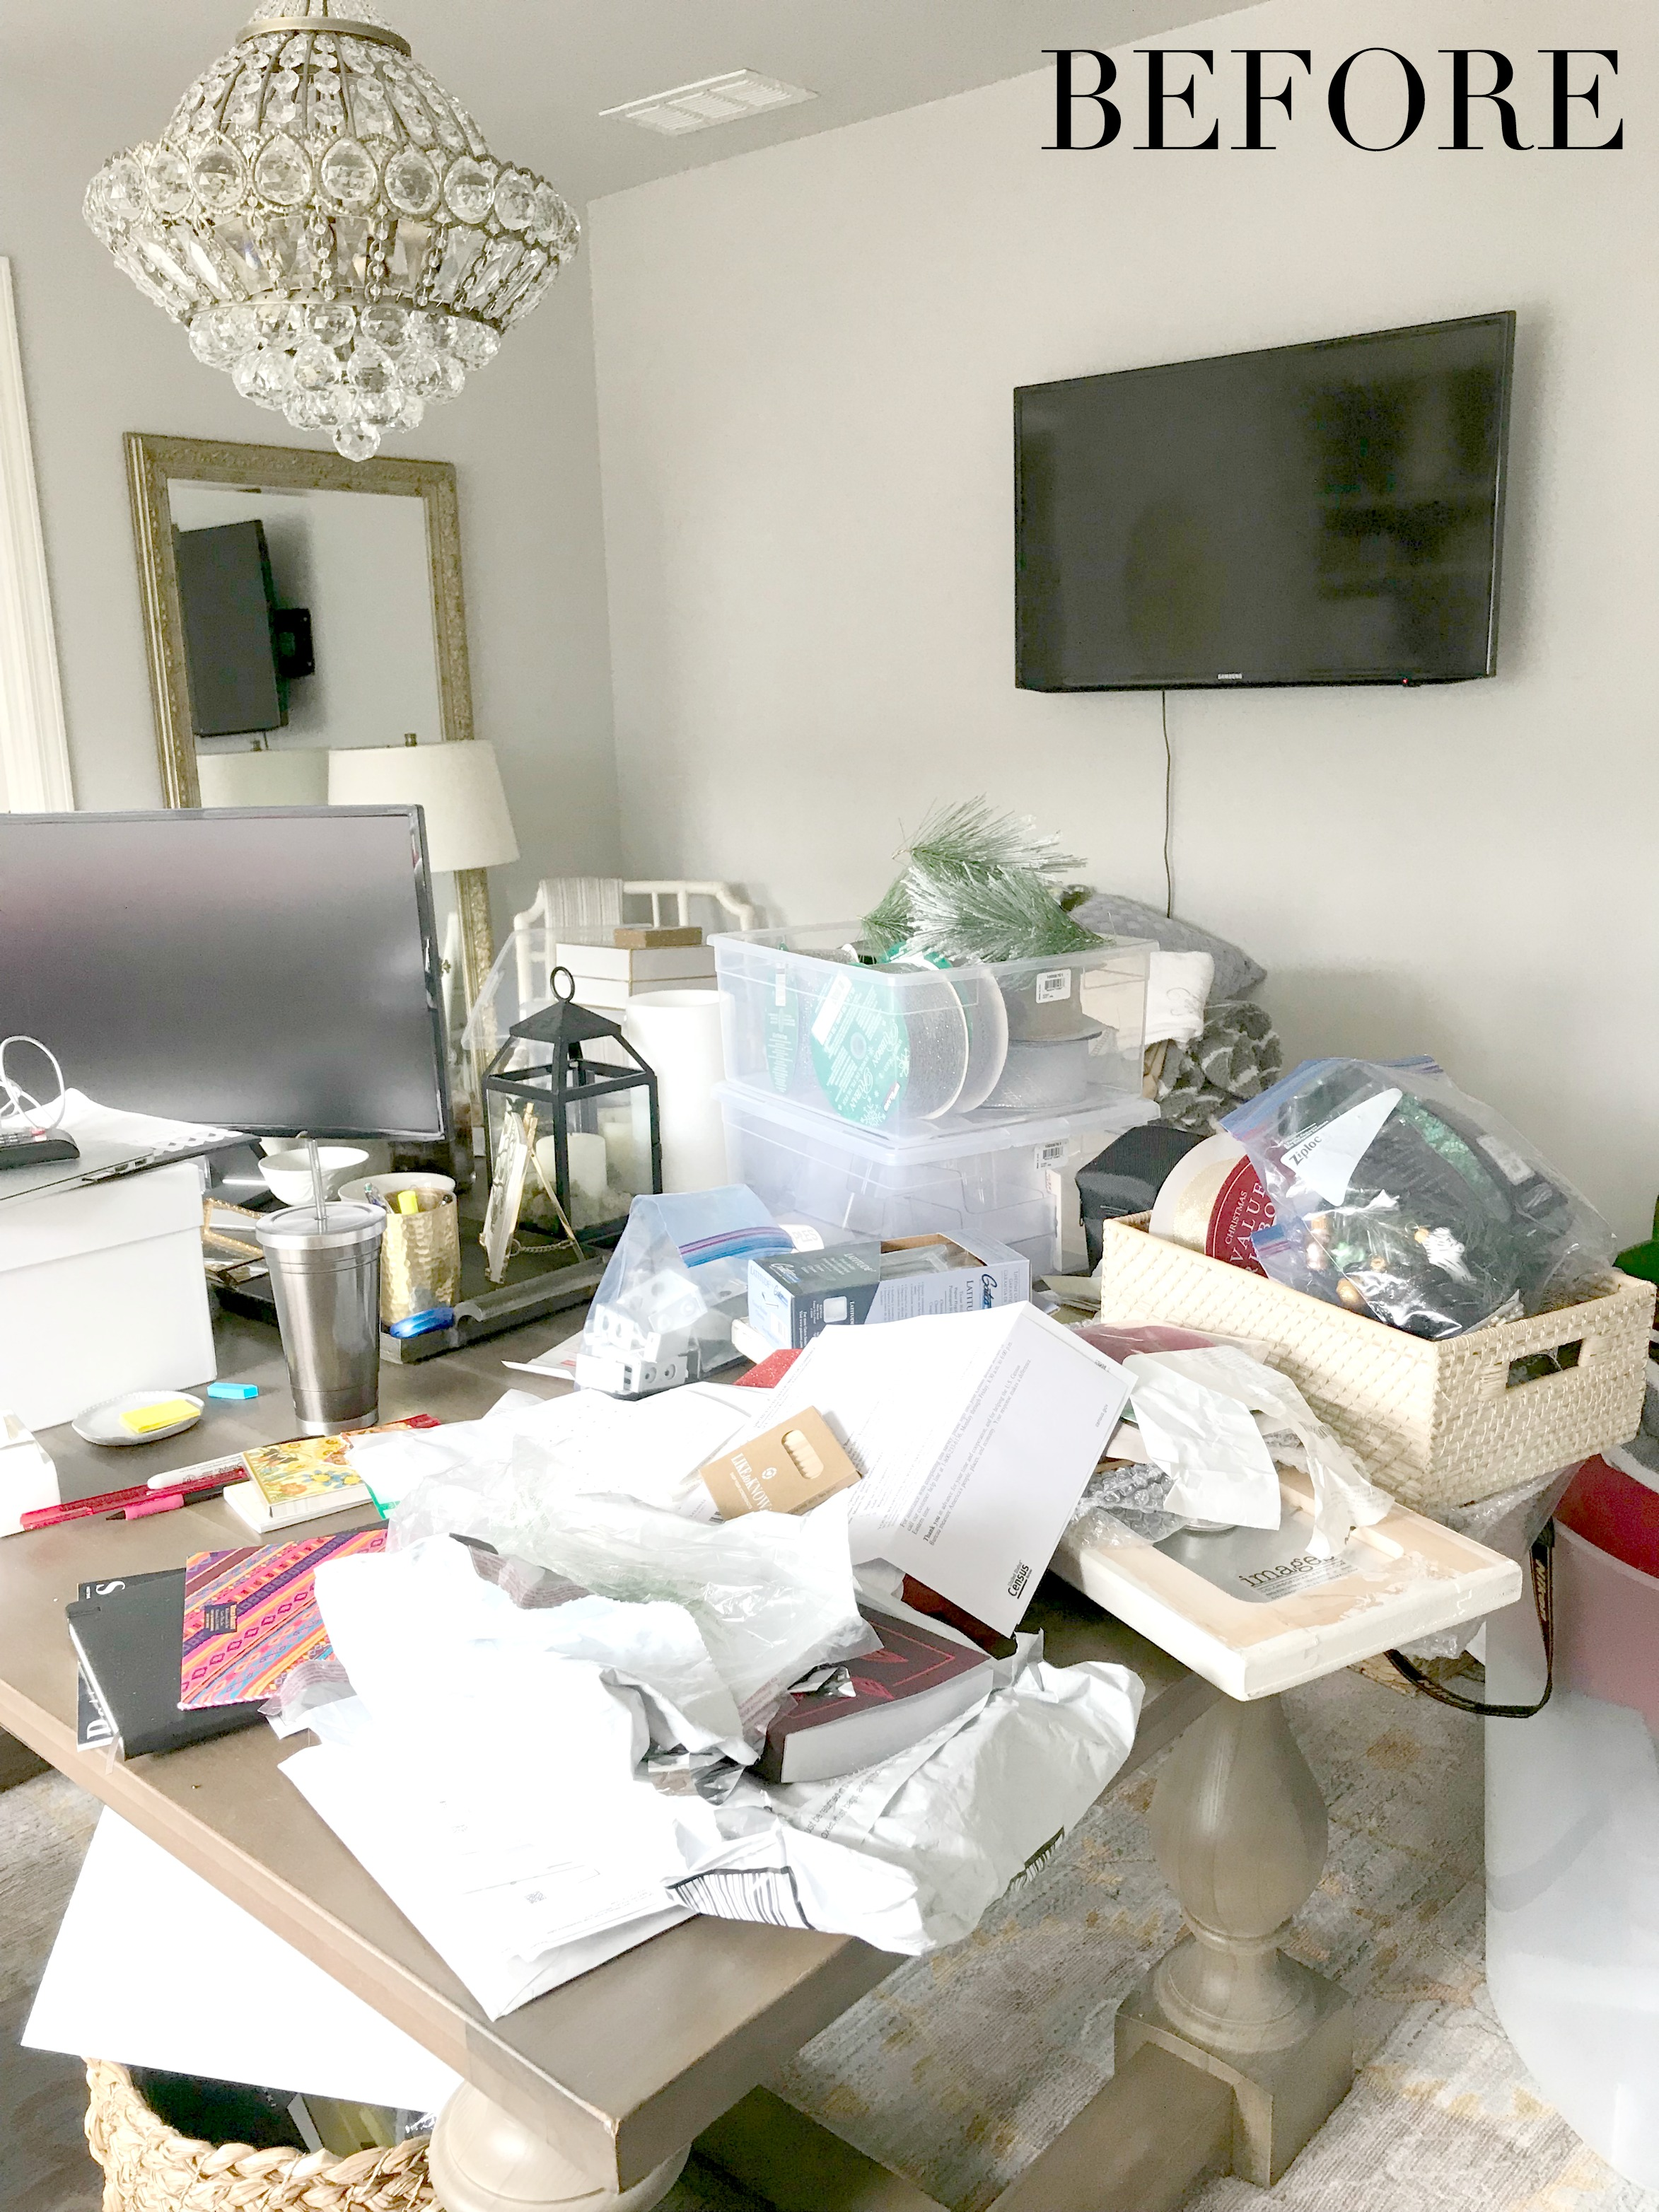 Messy office before cleaning